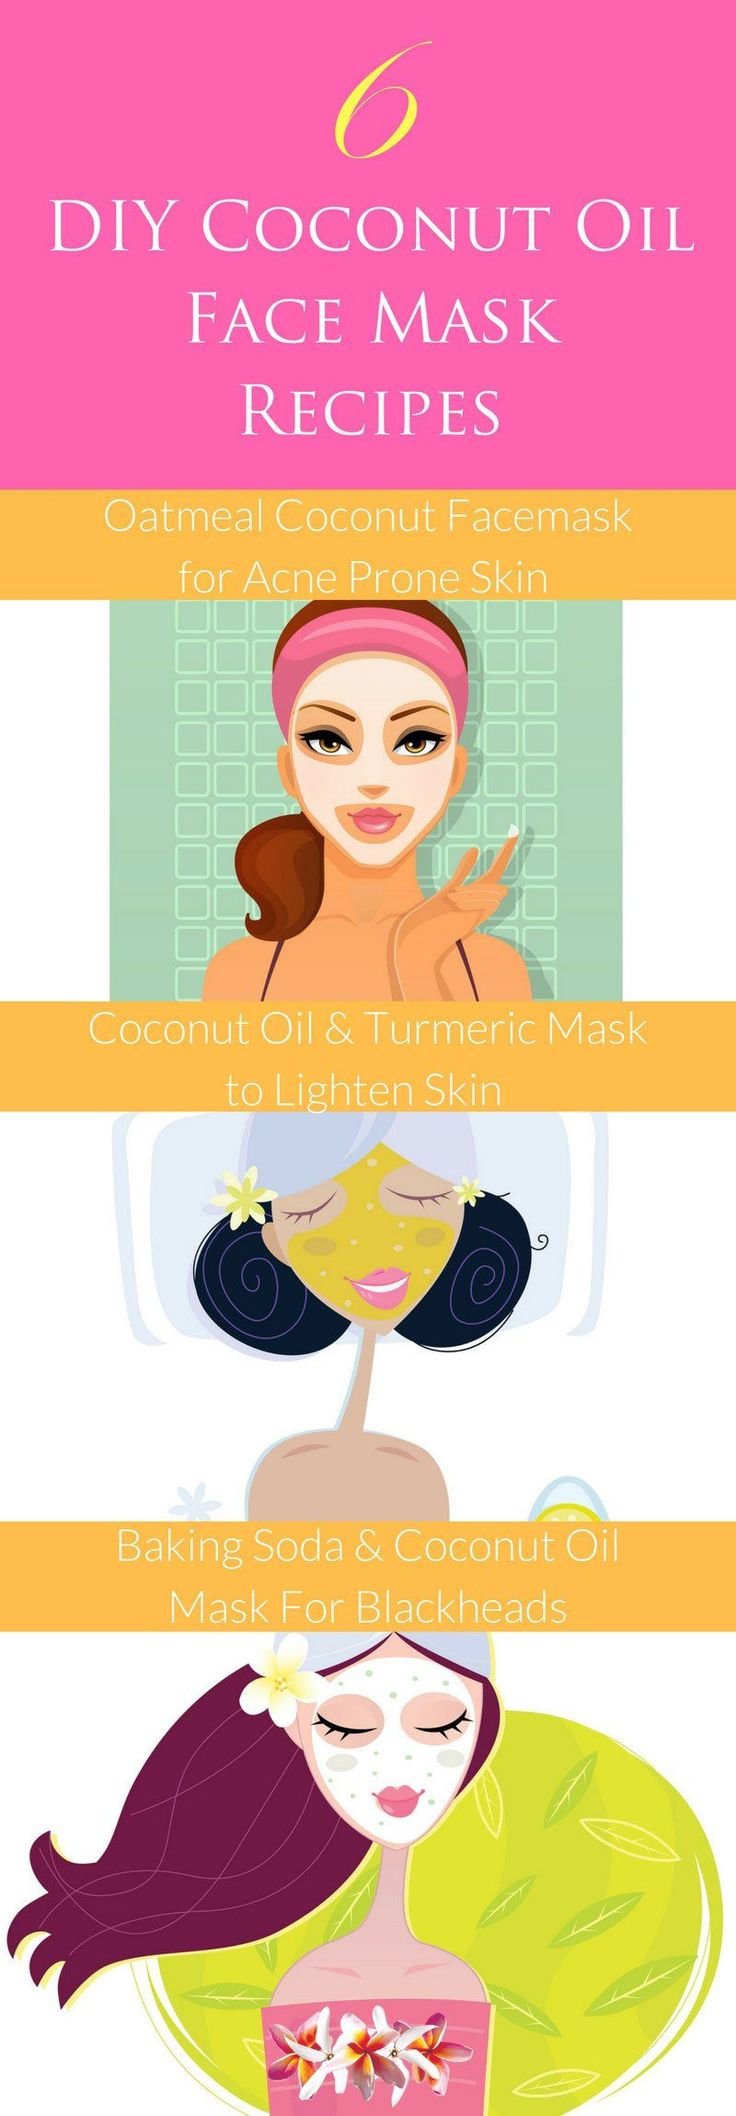 Here are 6 DIY coconut oil face mask recipes for you to try that are sure to leave your skin soft, supple and radiant.